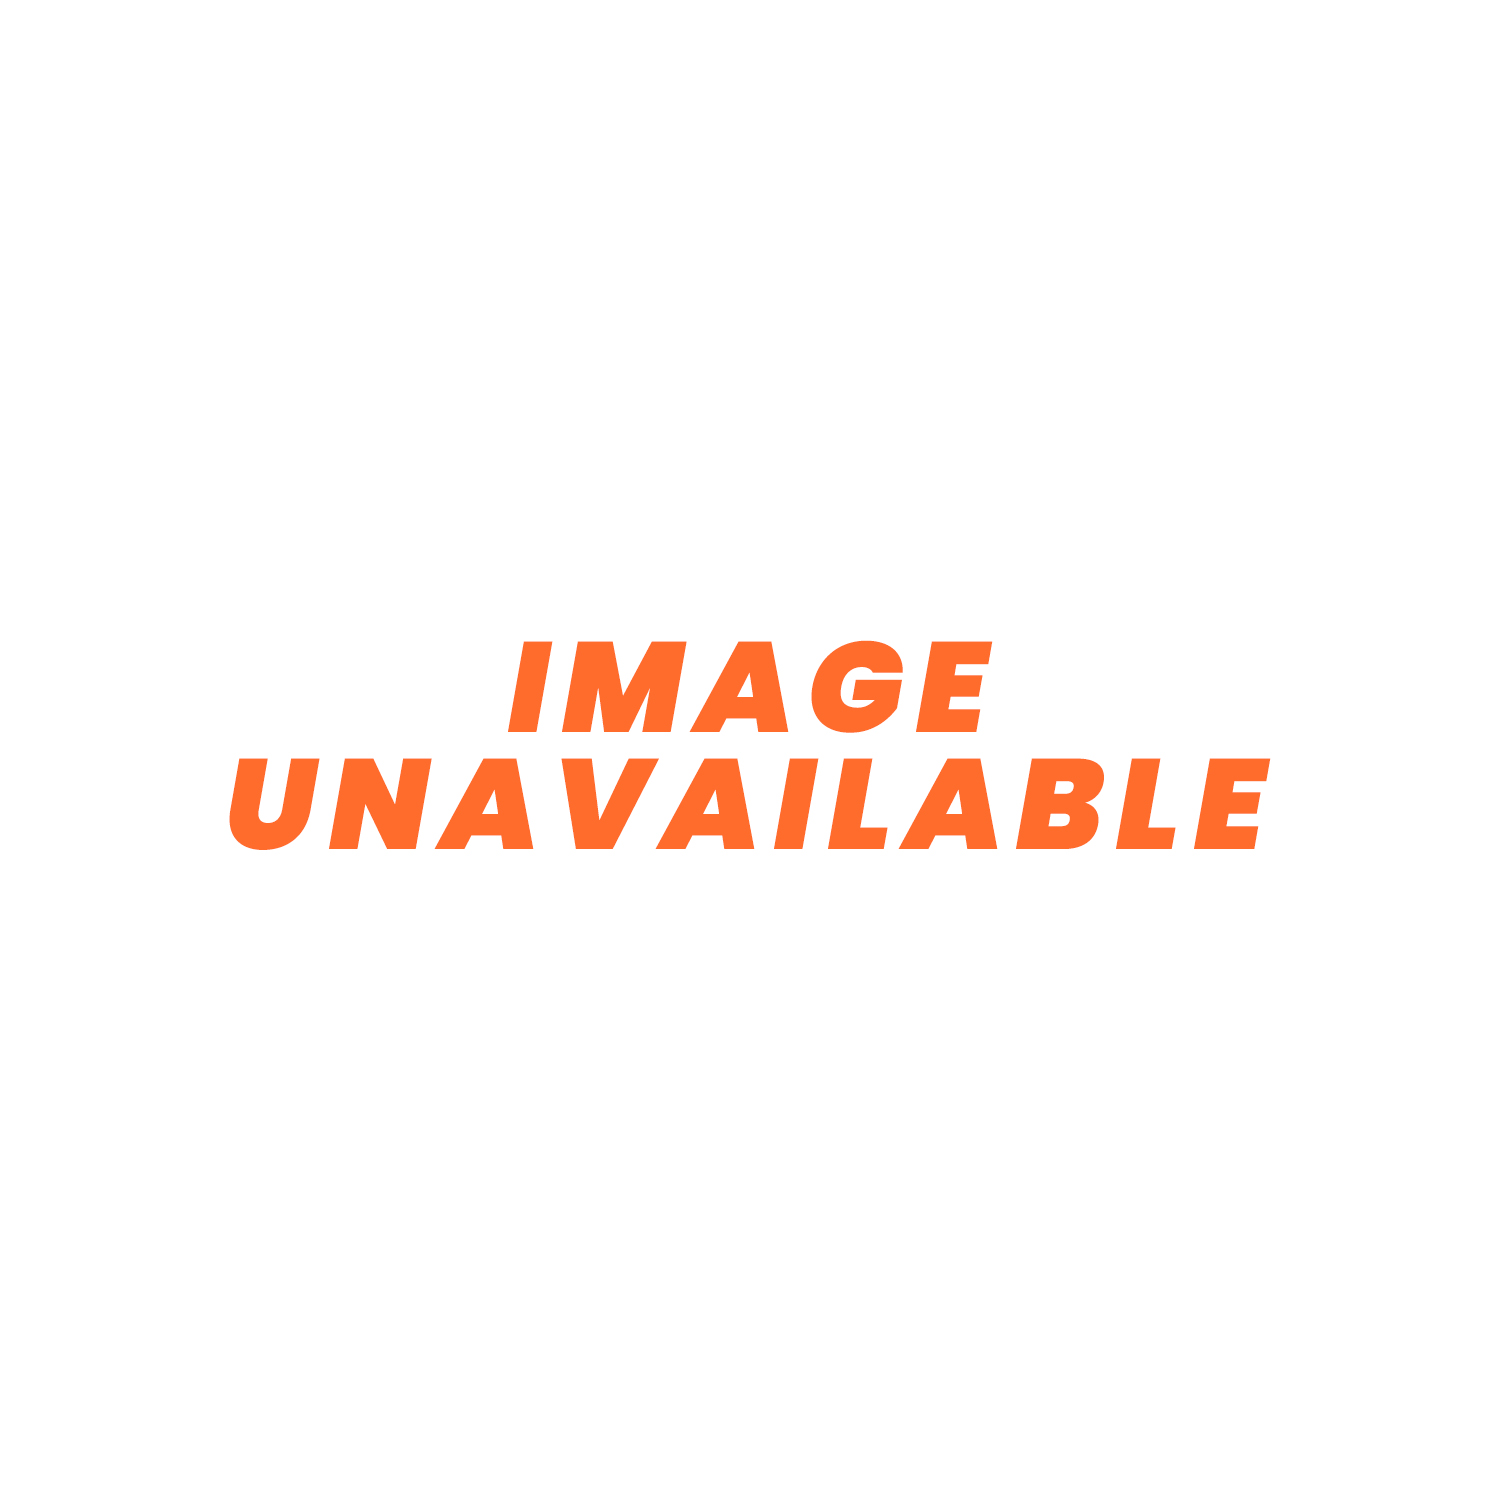 Adhesive Gold Reflective Heat Barrier Sheet 24 x 48""